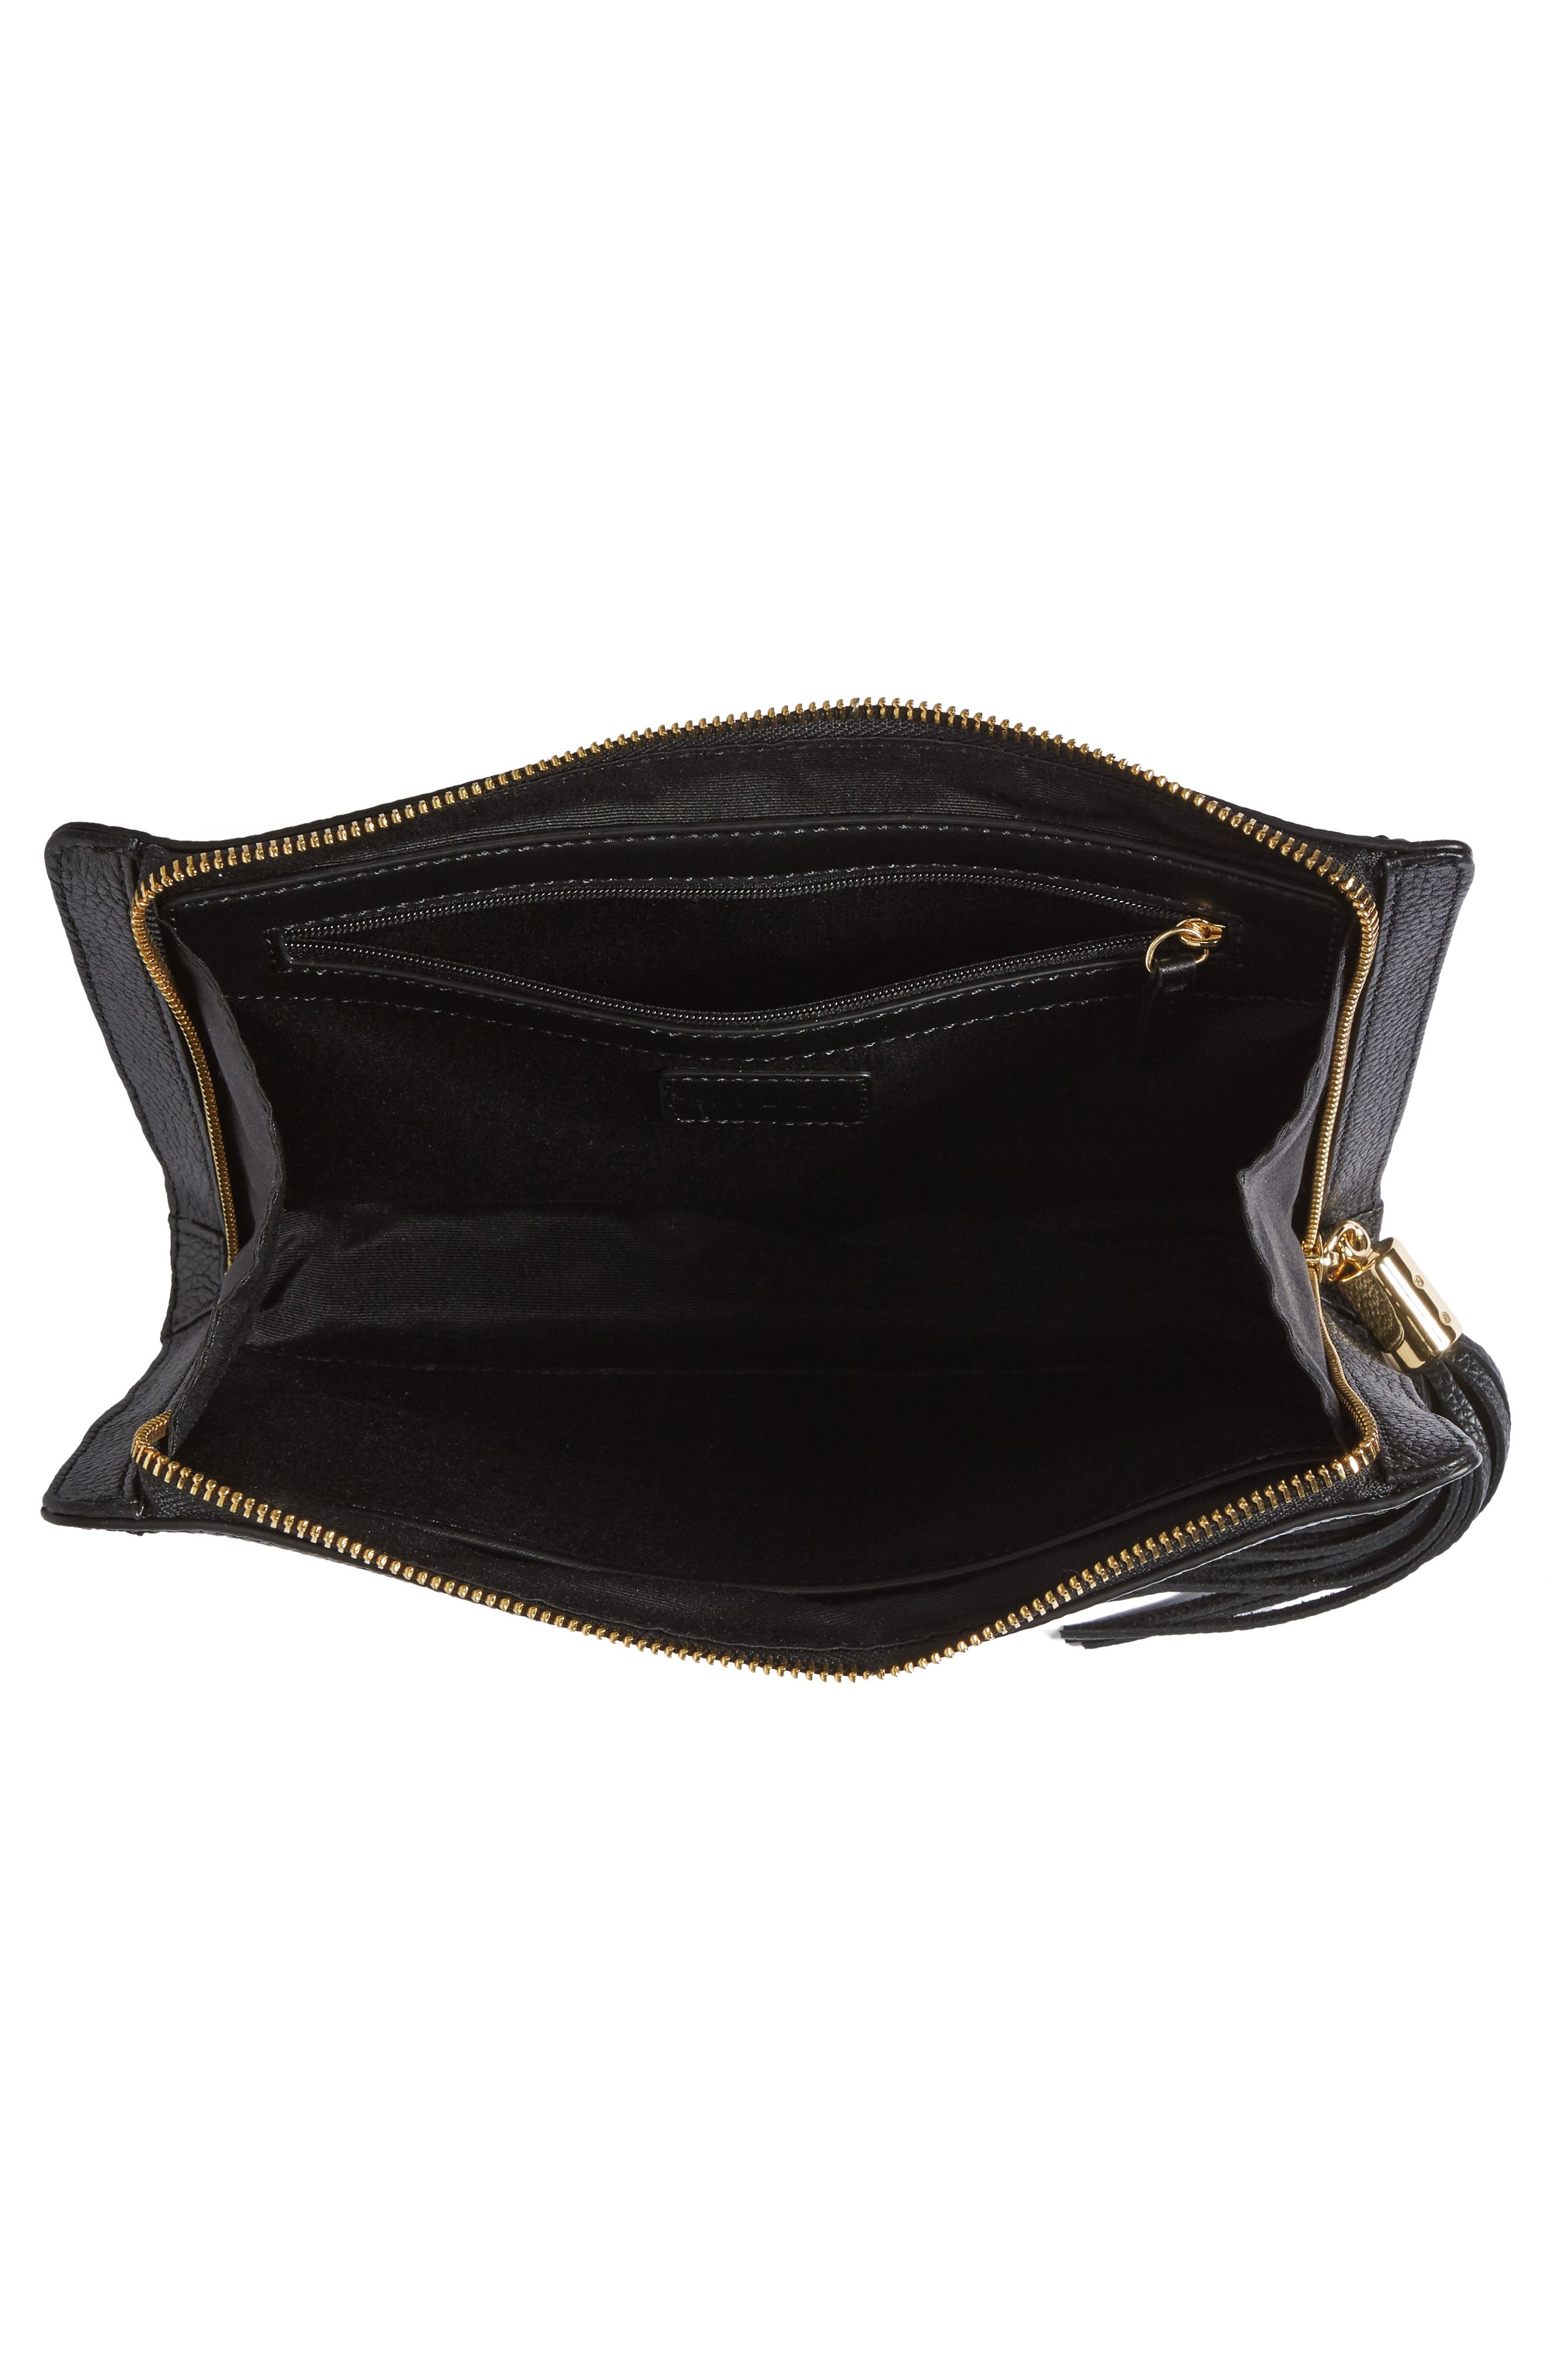 Astor Leather Clutch,                             Alternate thumbnail 4, color,                             001